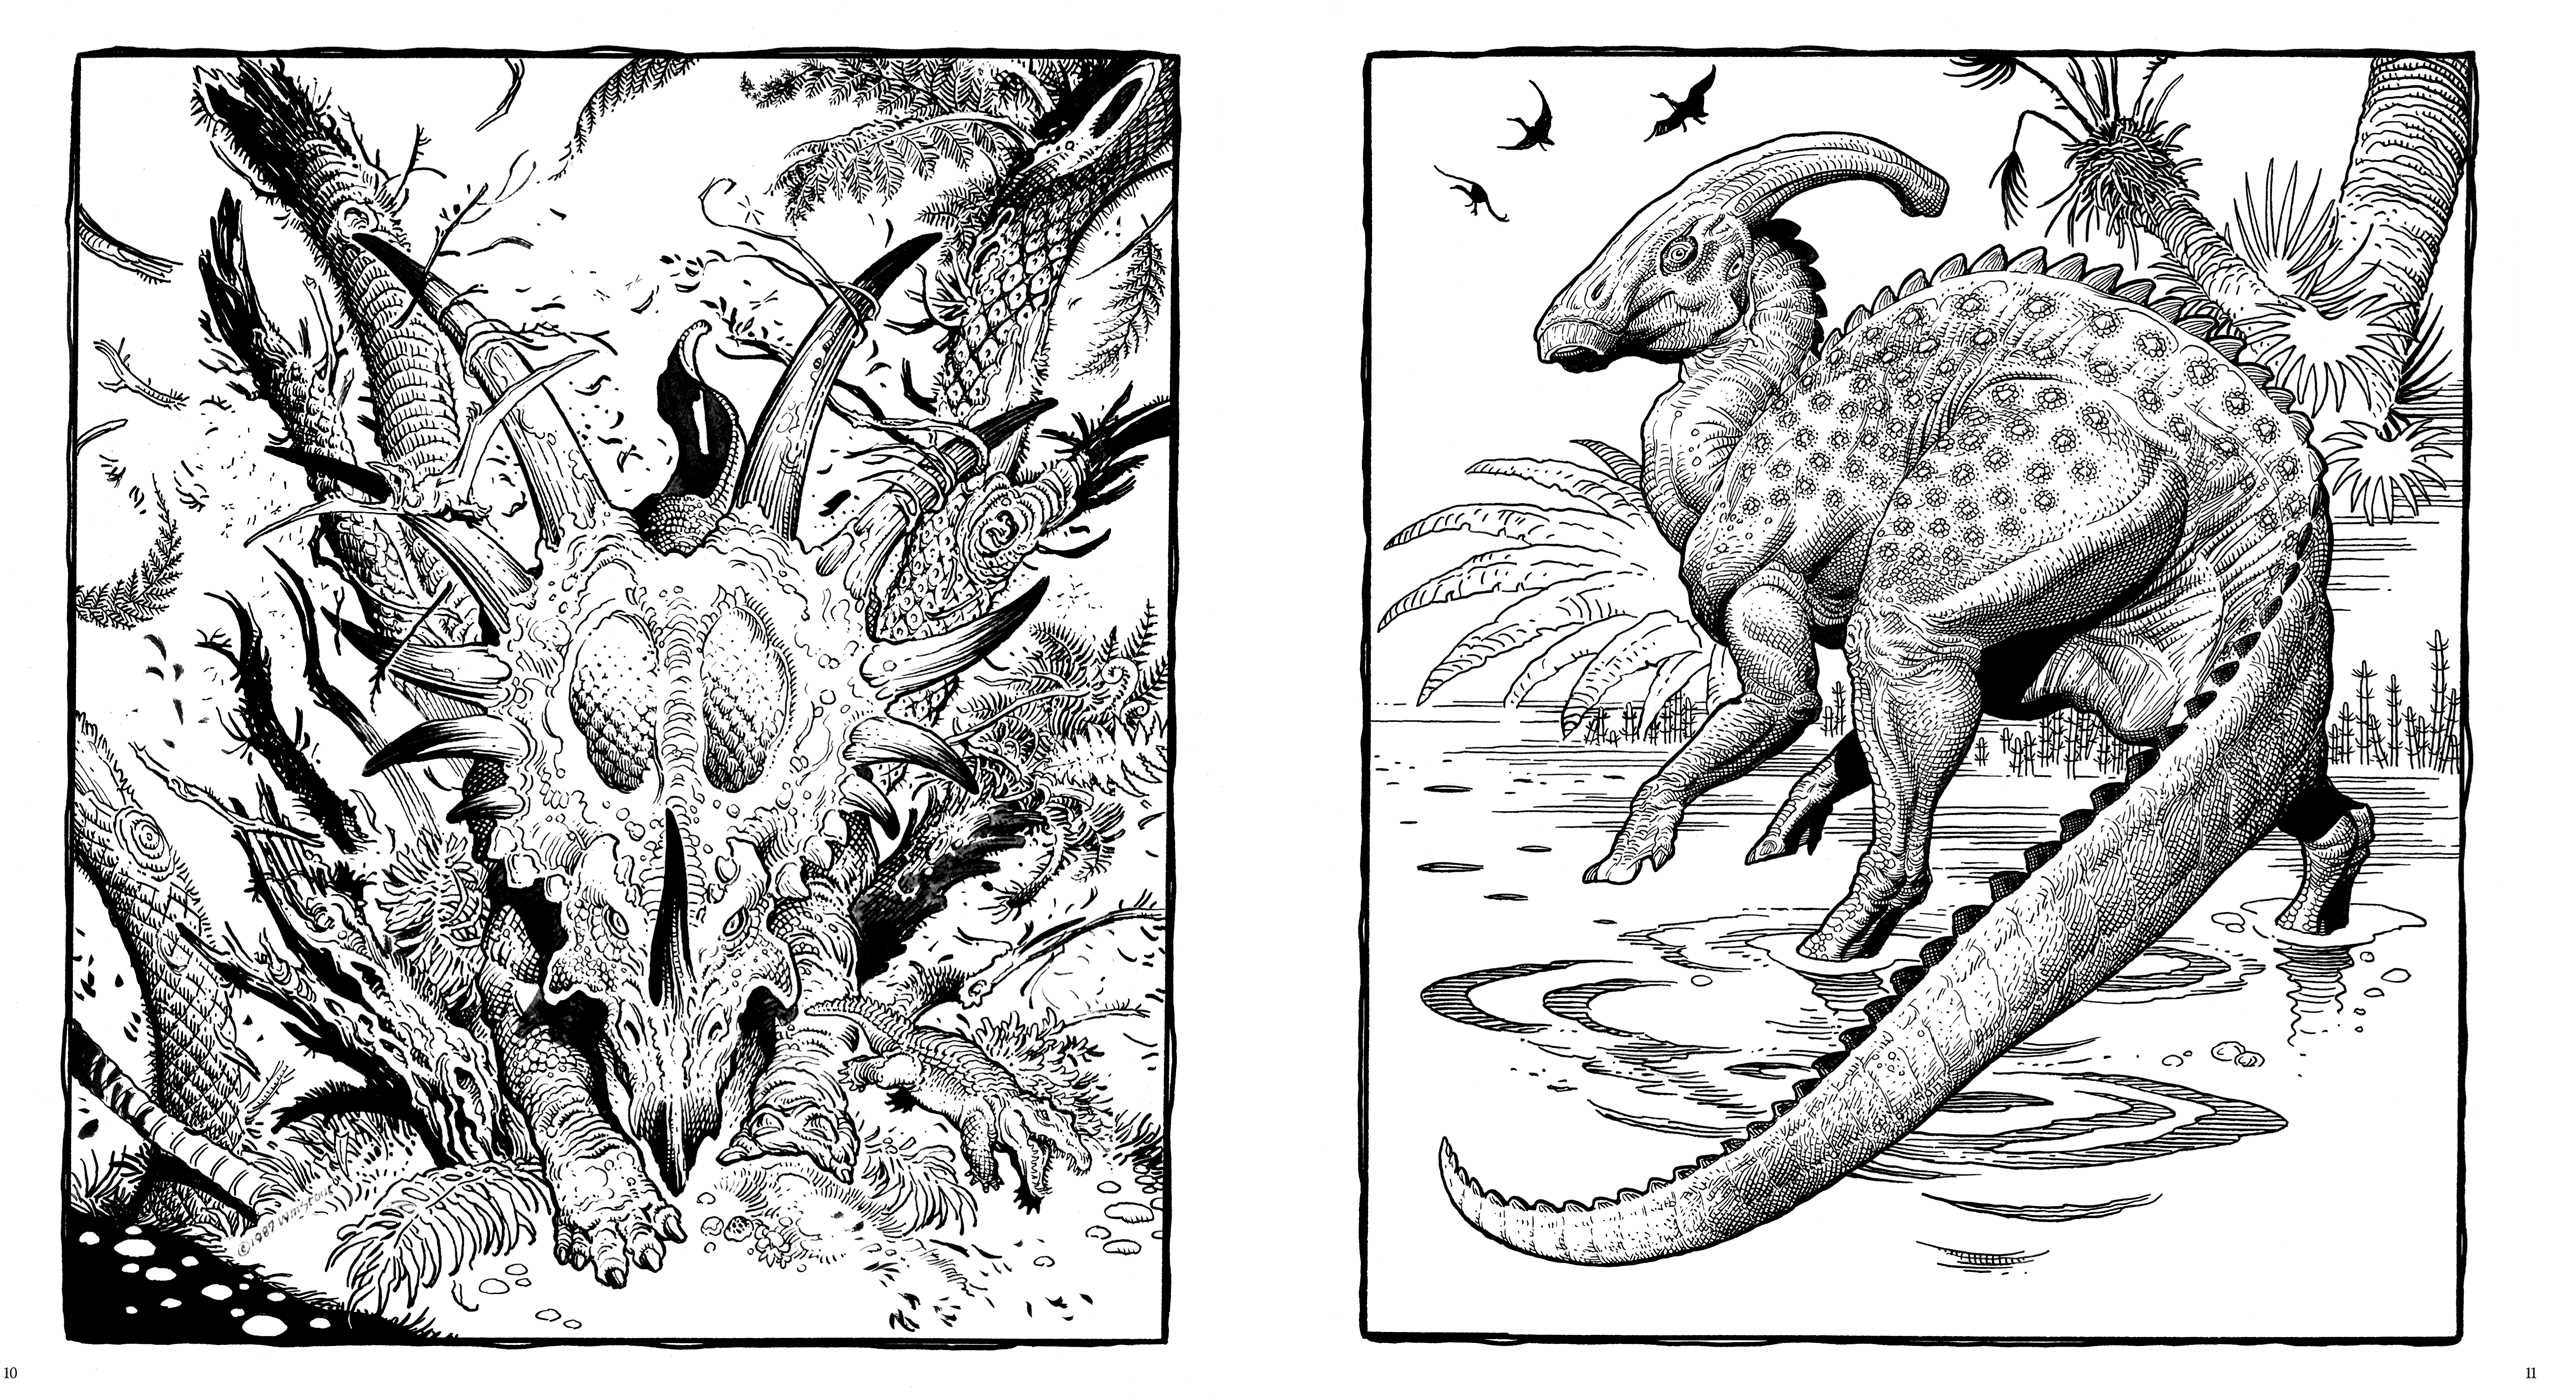 Dinosaurs: A Coloring Book by William Stout | Book by William Stout ...